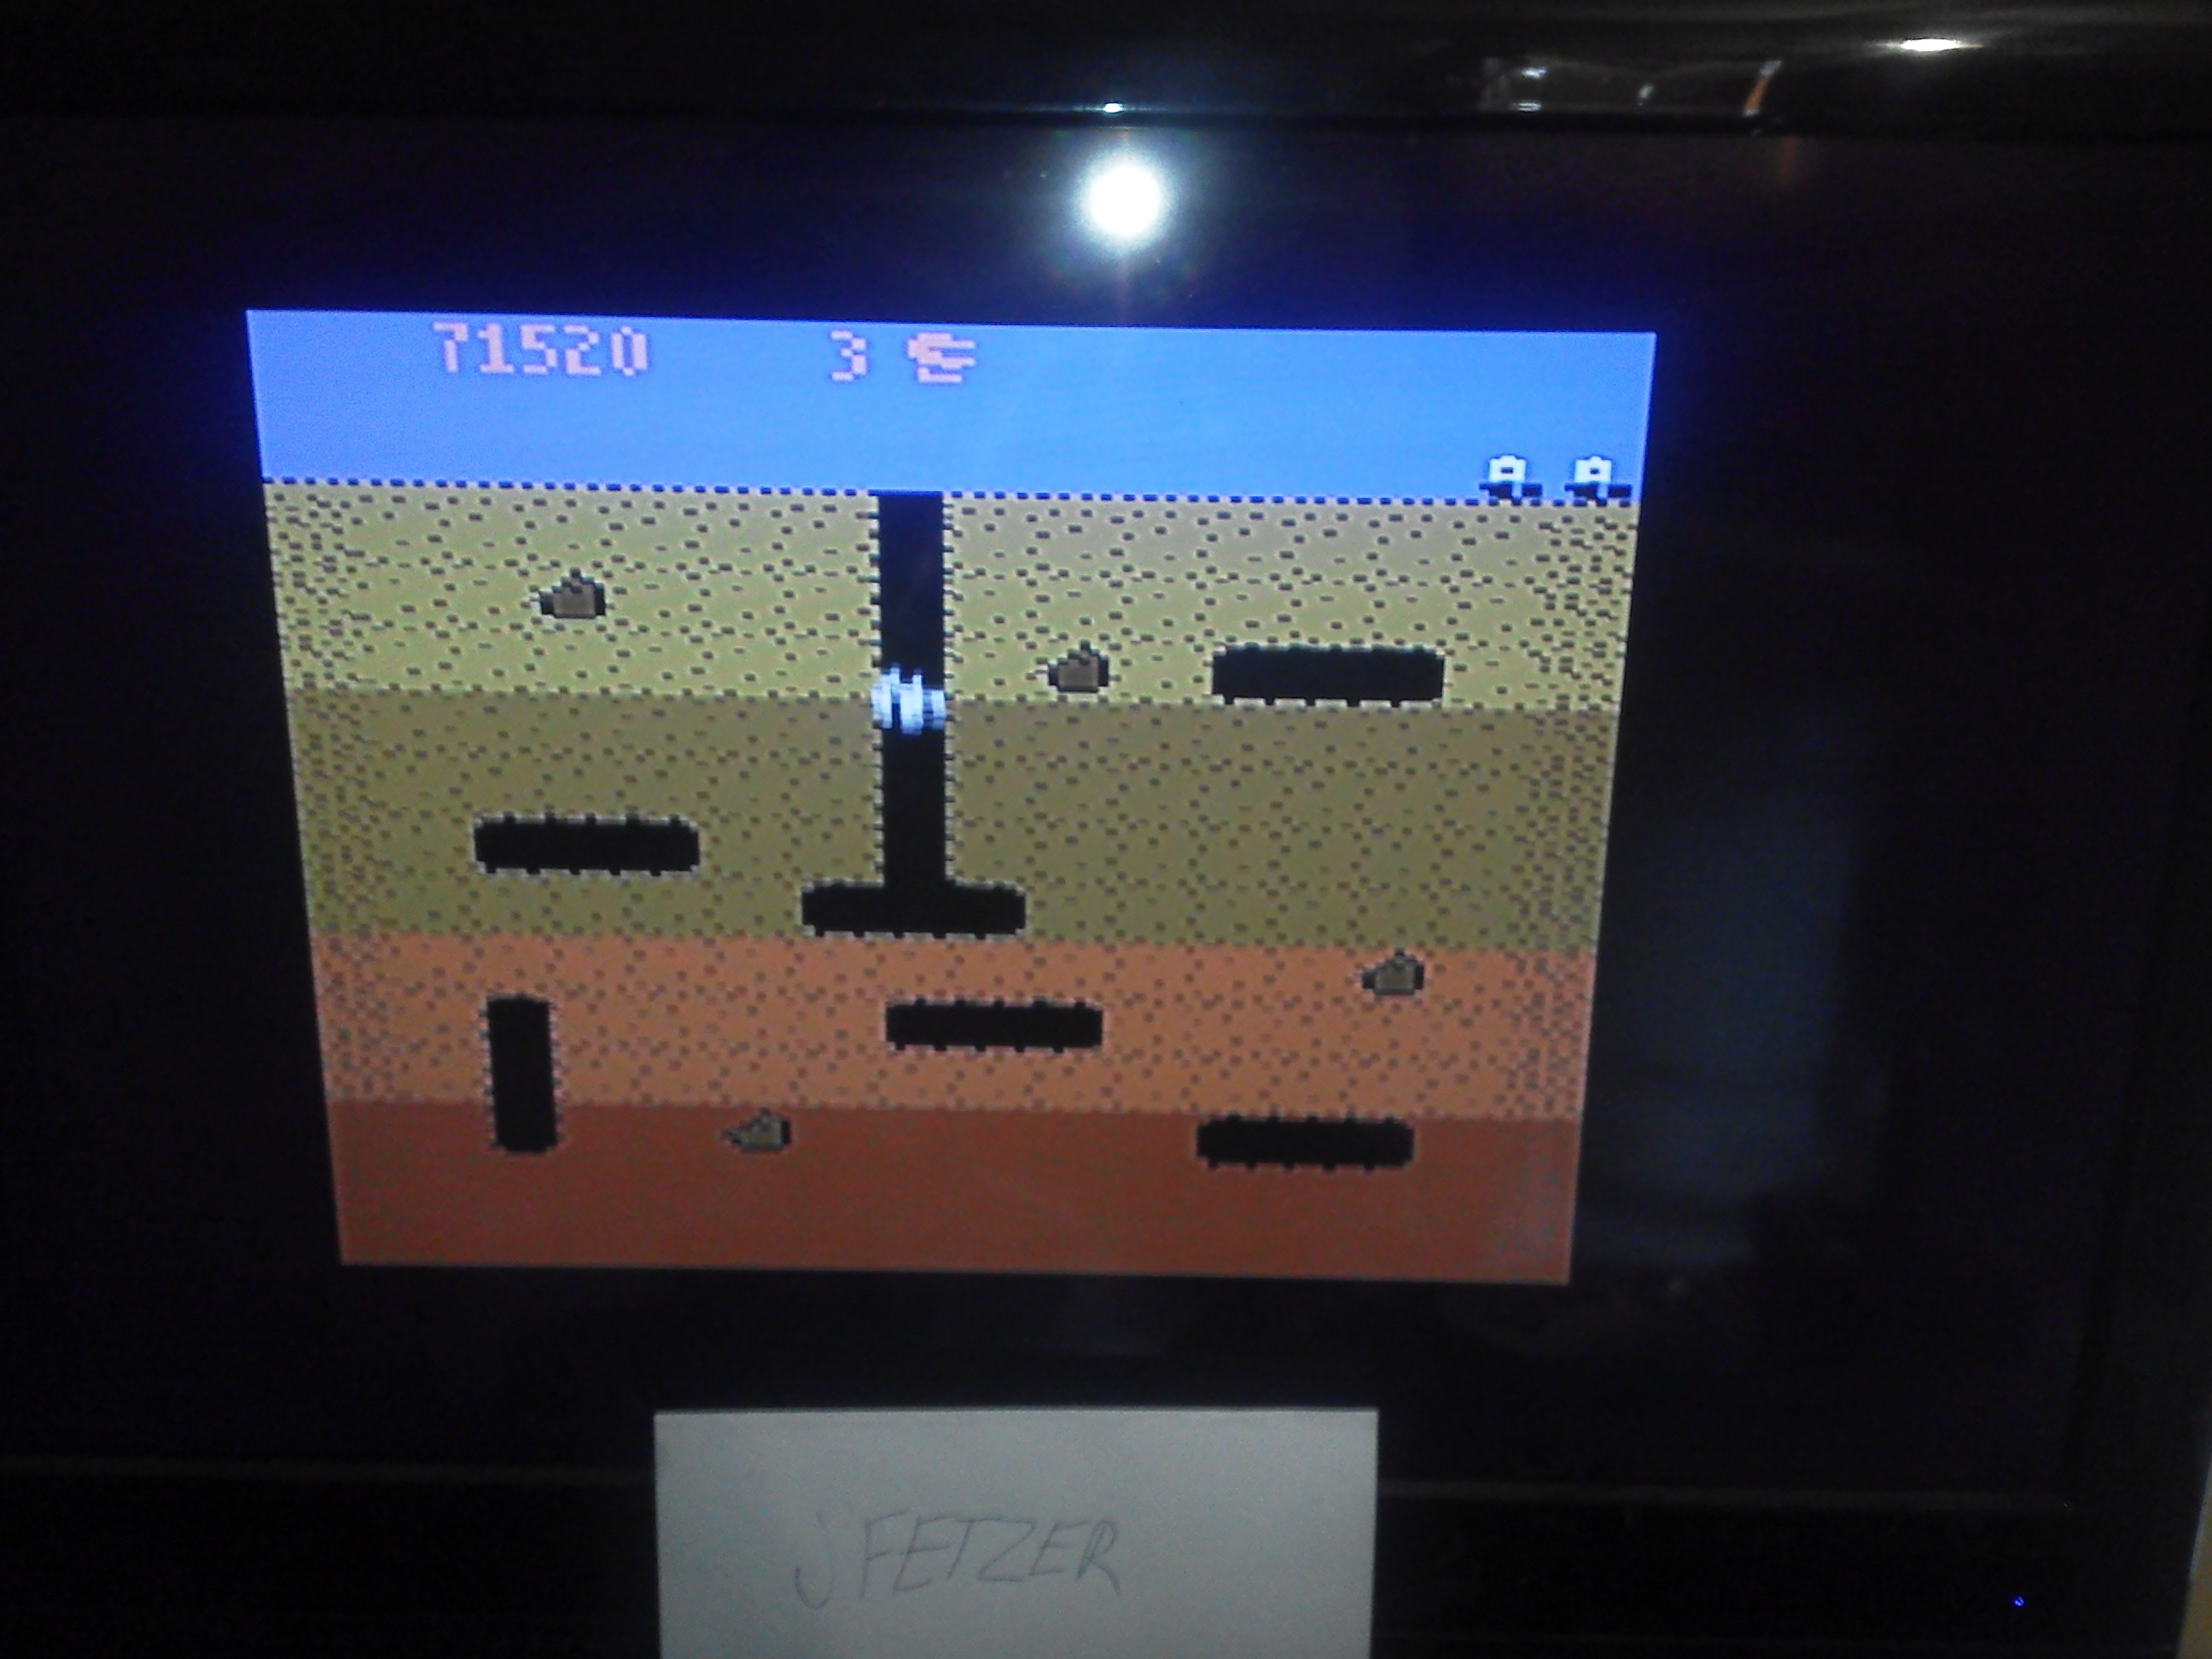 Dig Dug: Carrot Start 71,520 points